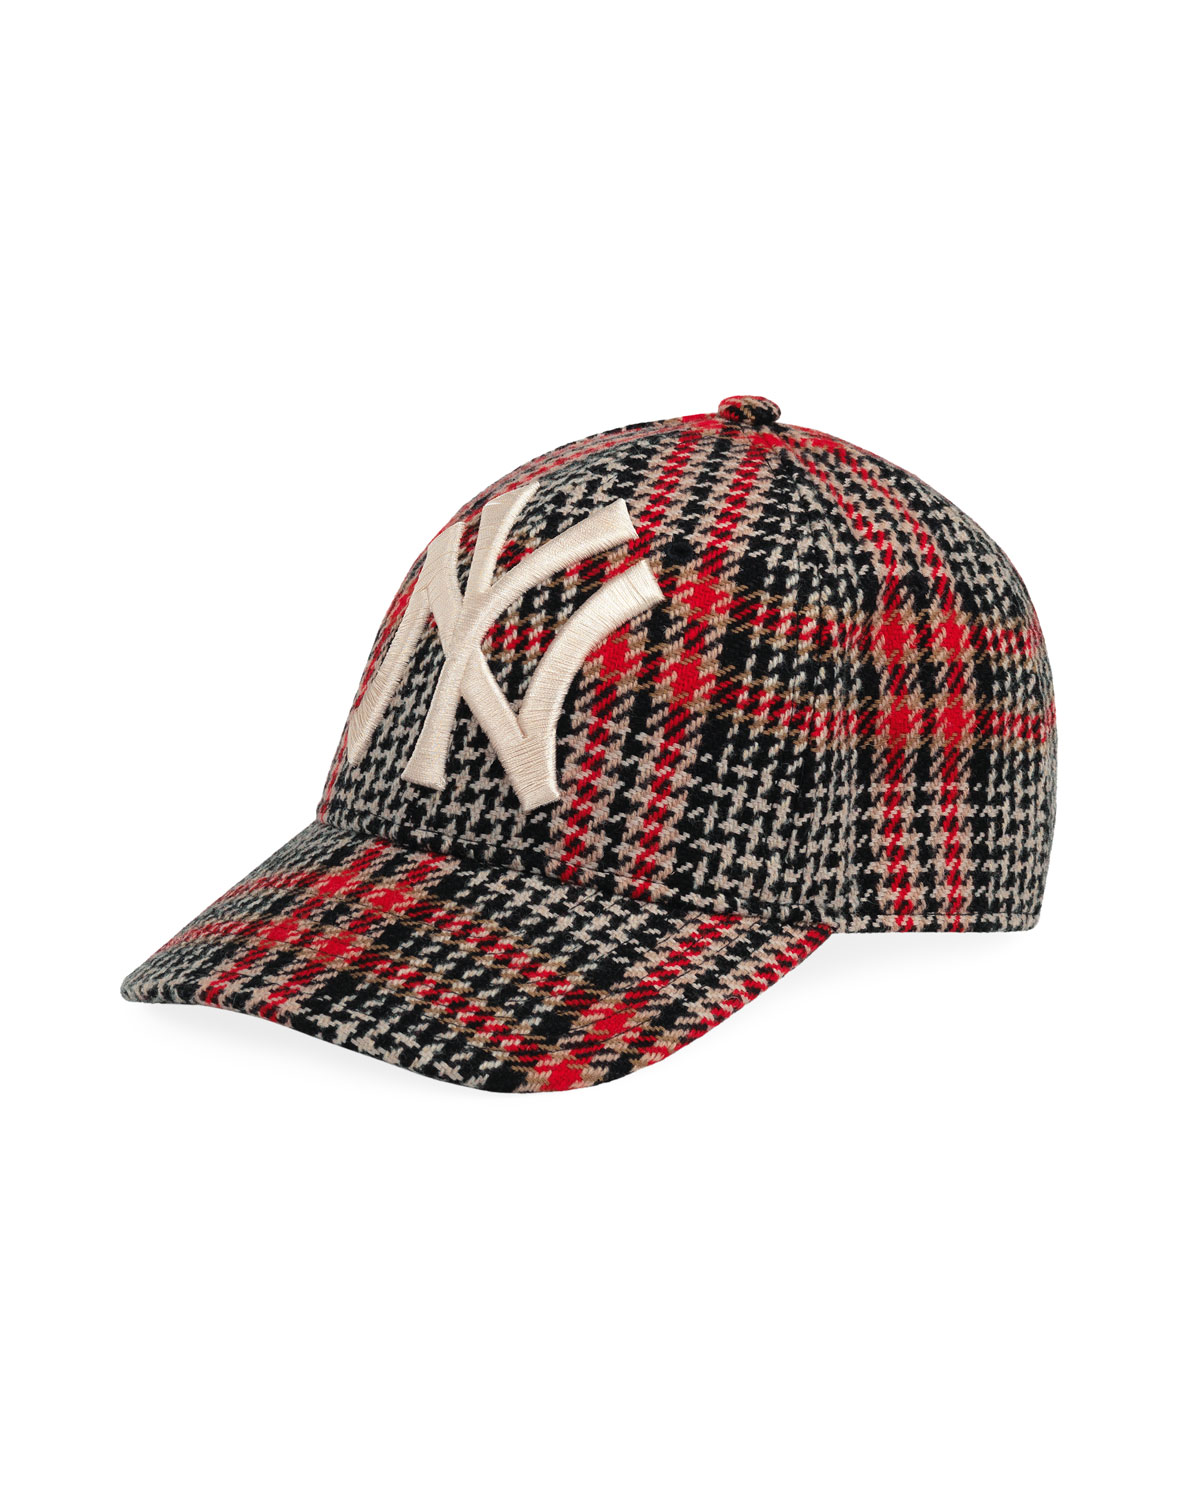 Gucci Men s Houndstooth Baseball Cap with NY Yankees Applique ... b89c6e14a405